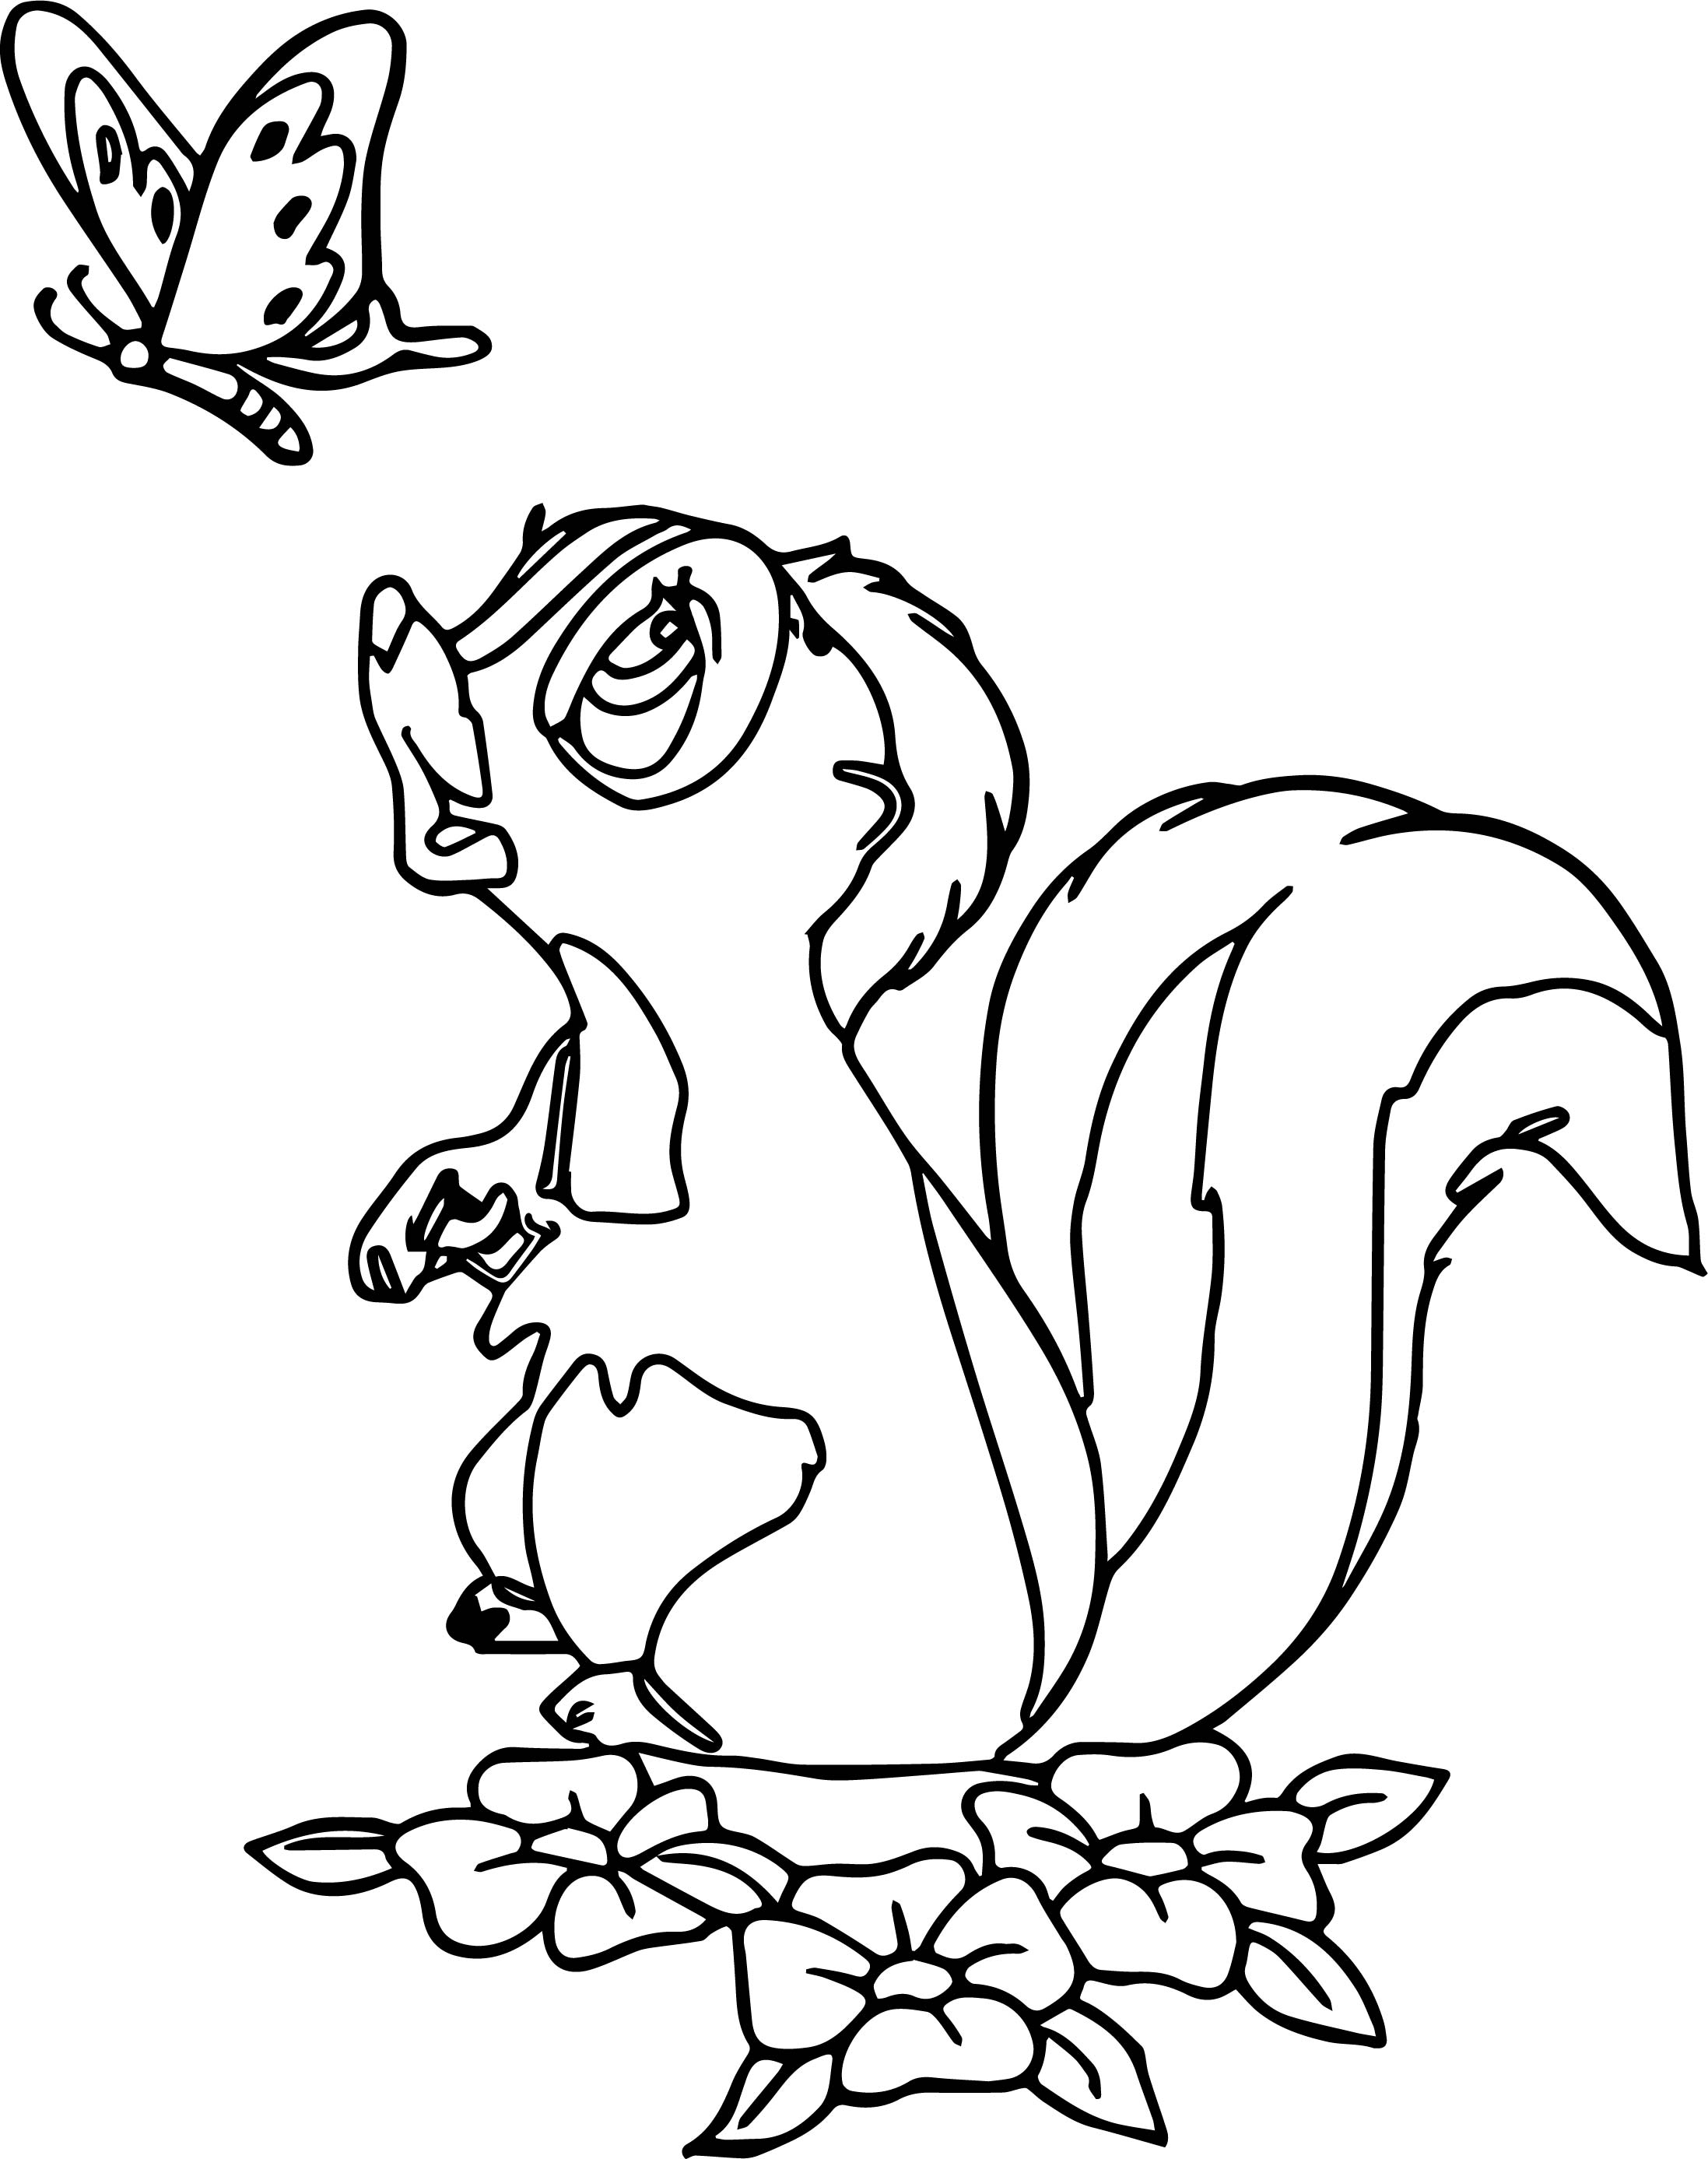 coloring page of a skunk bambi s flower the skunk flower butter coloring pages